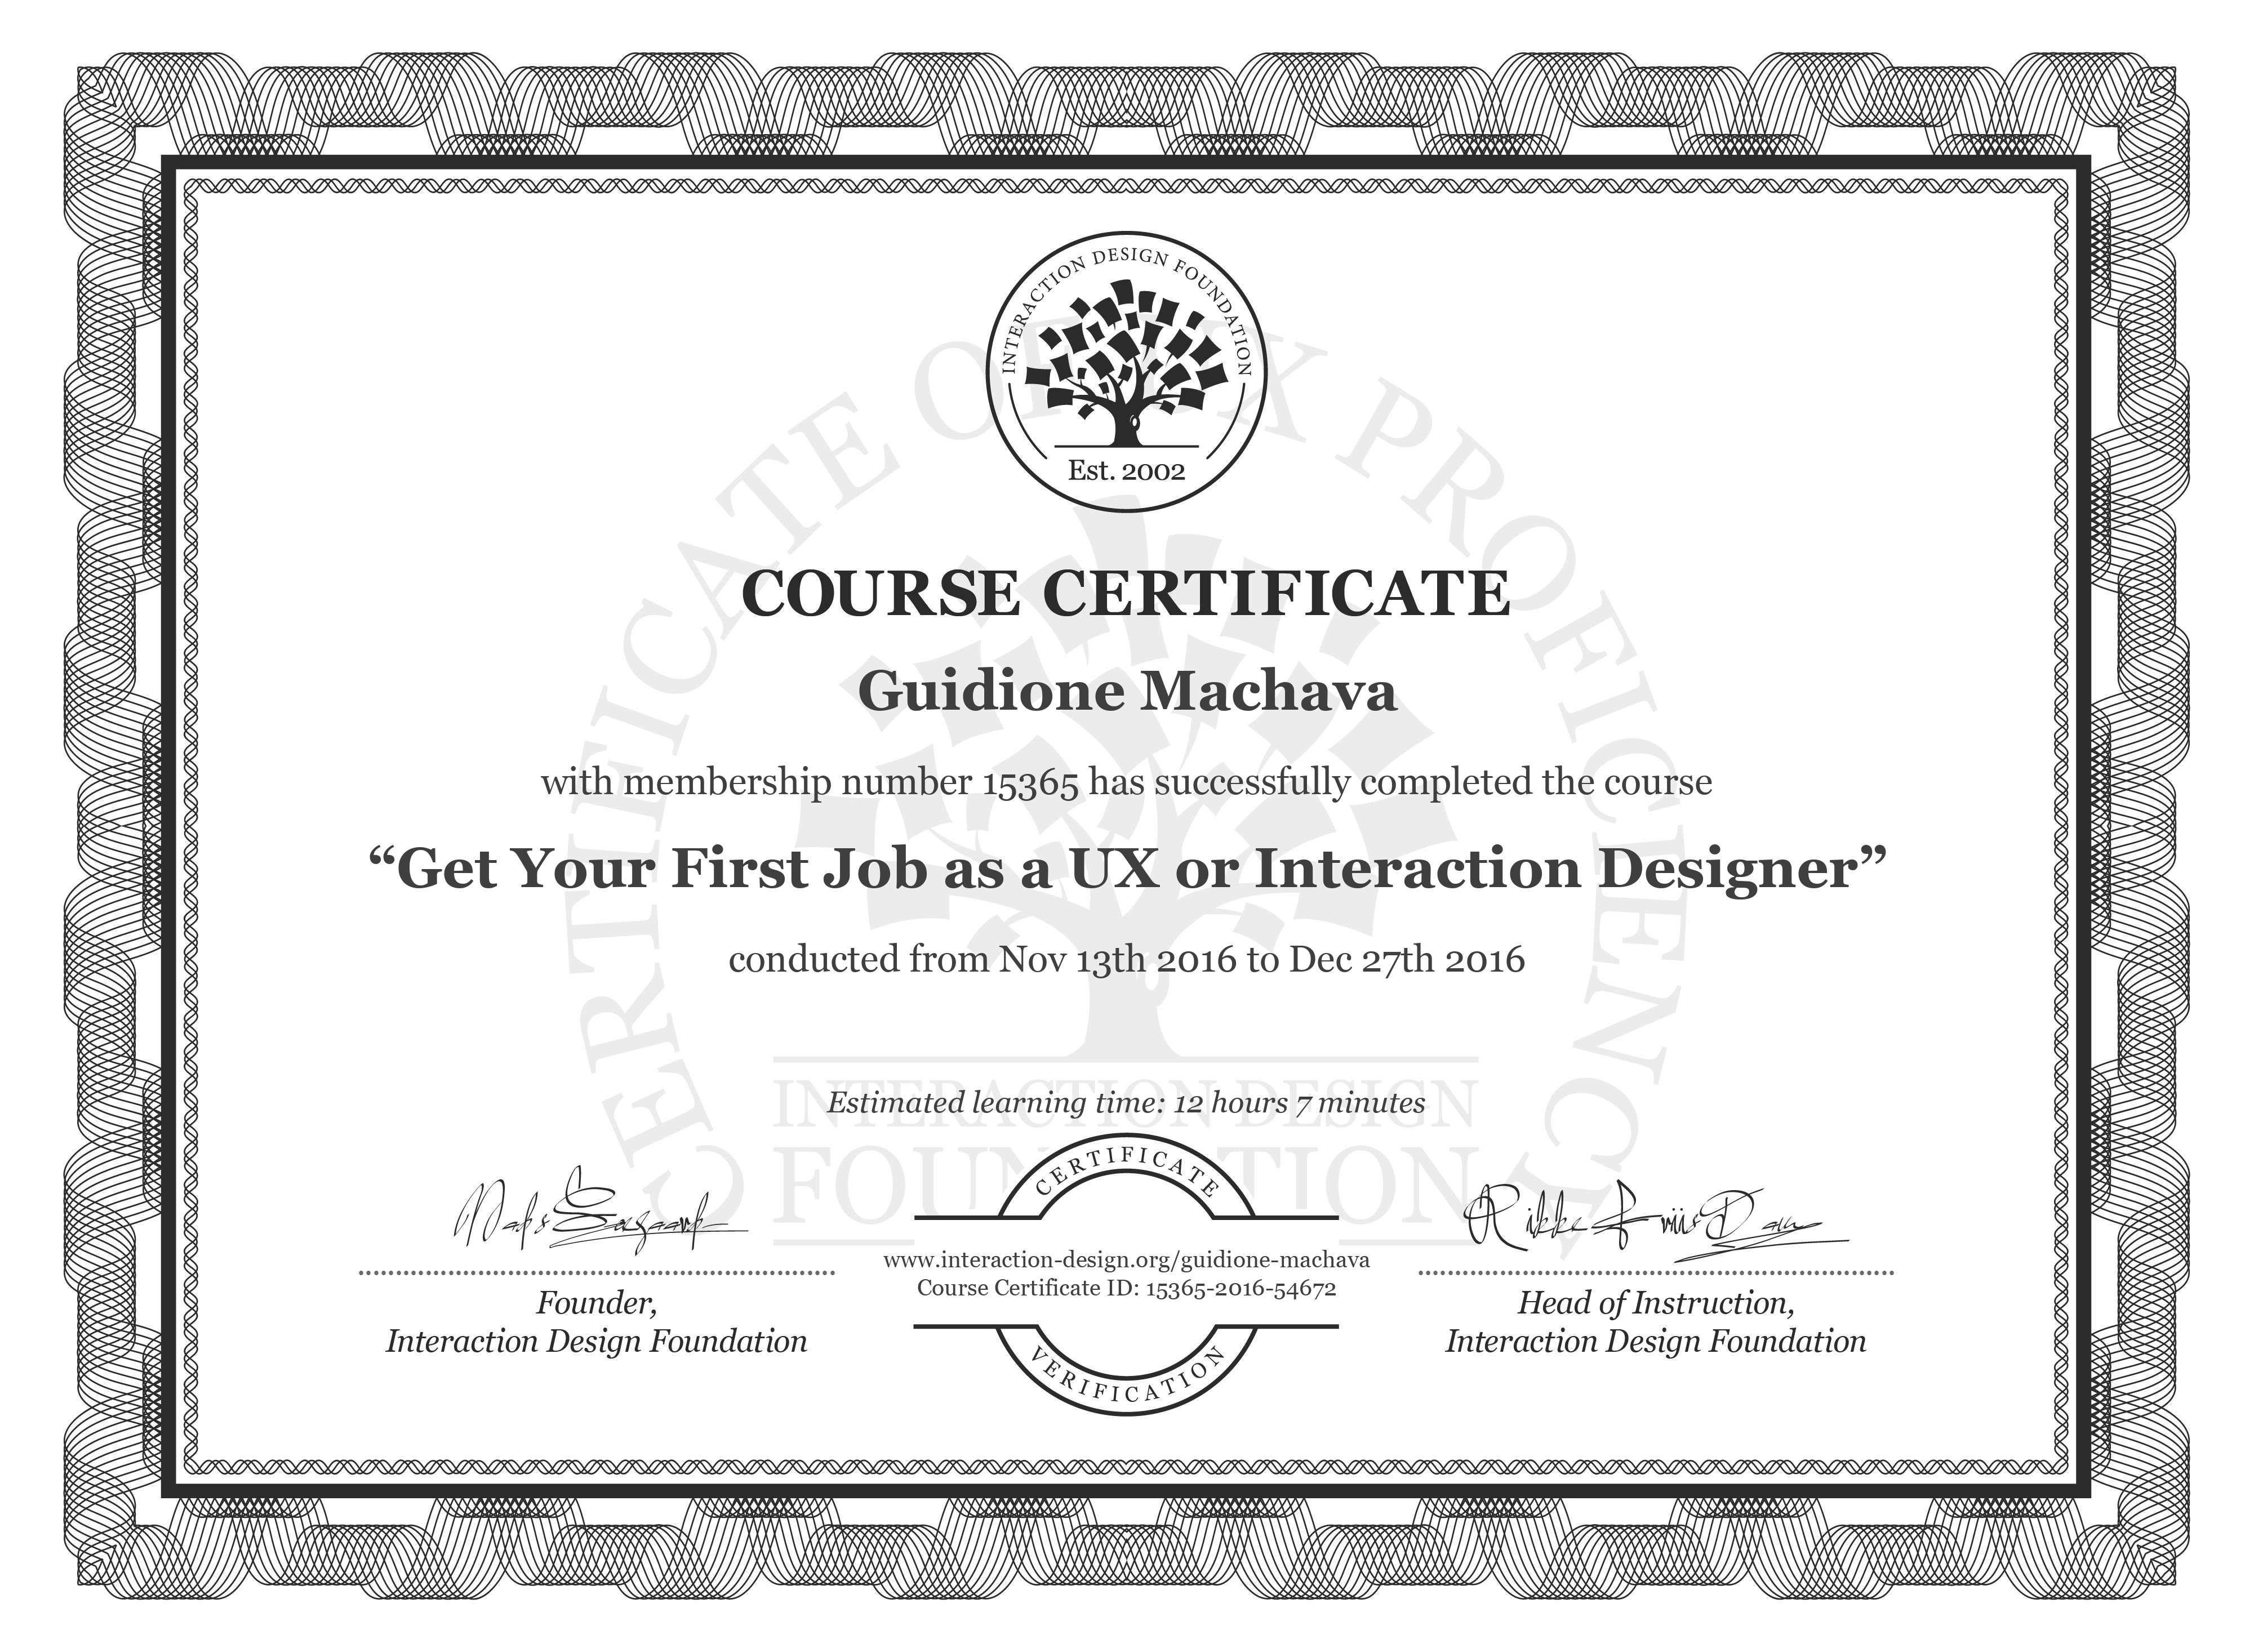 Guidione Machava's Course Certificate: Get Your First Job as a UX or Interaction Designer